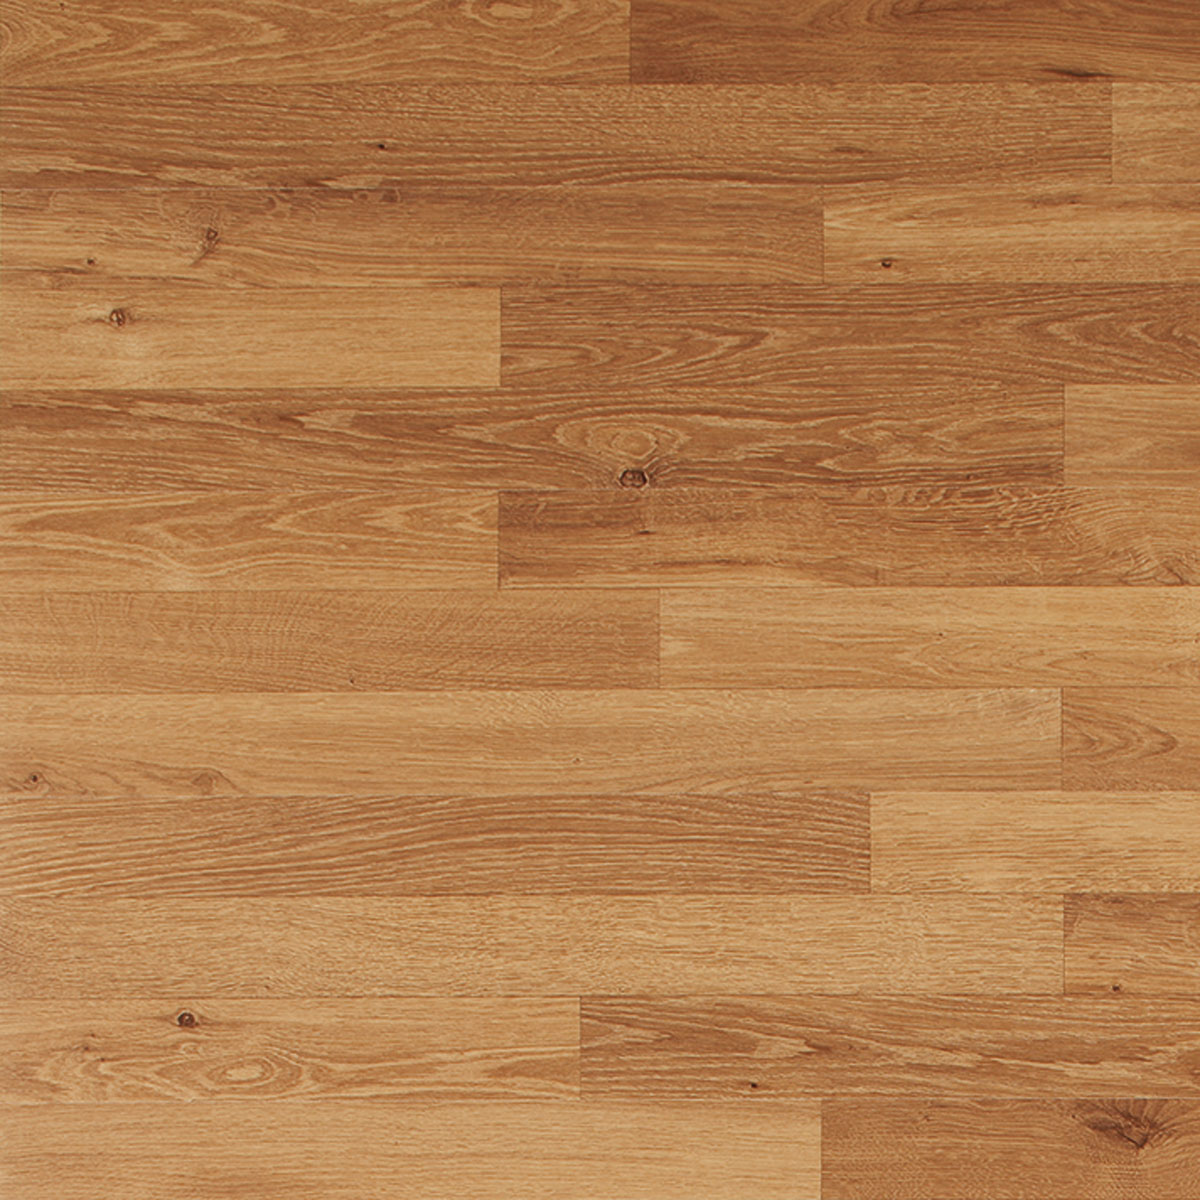 Things You Should Know About The Appearance Of A Wooden Floor Top Flooring